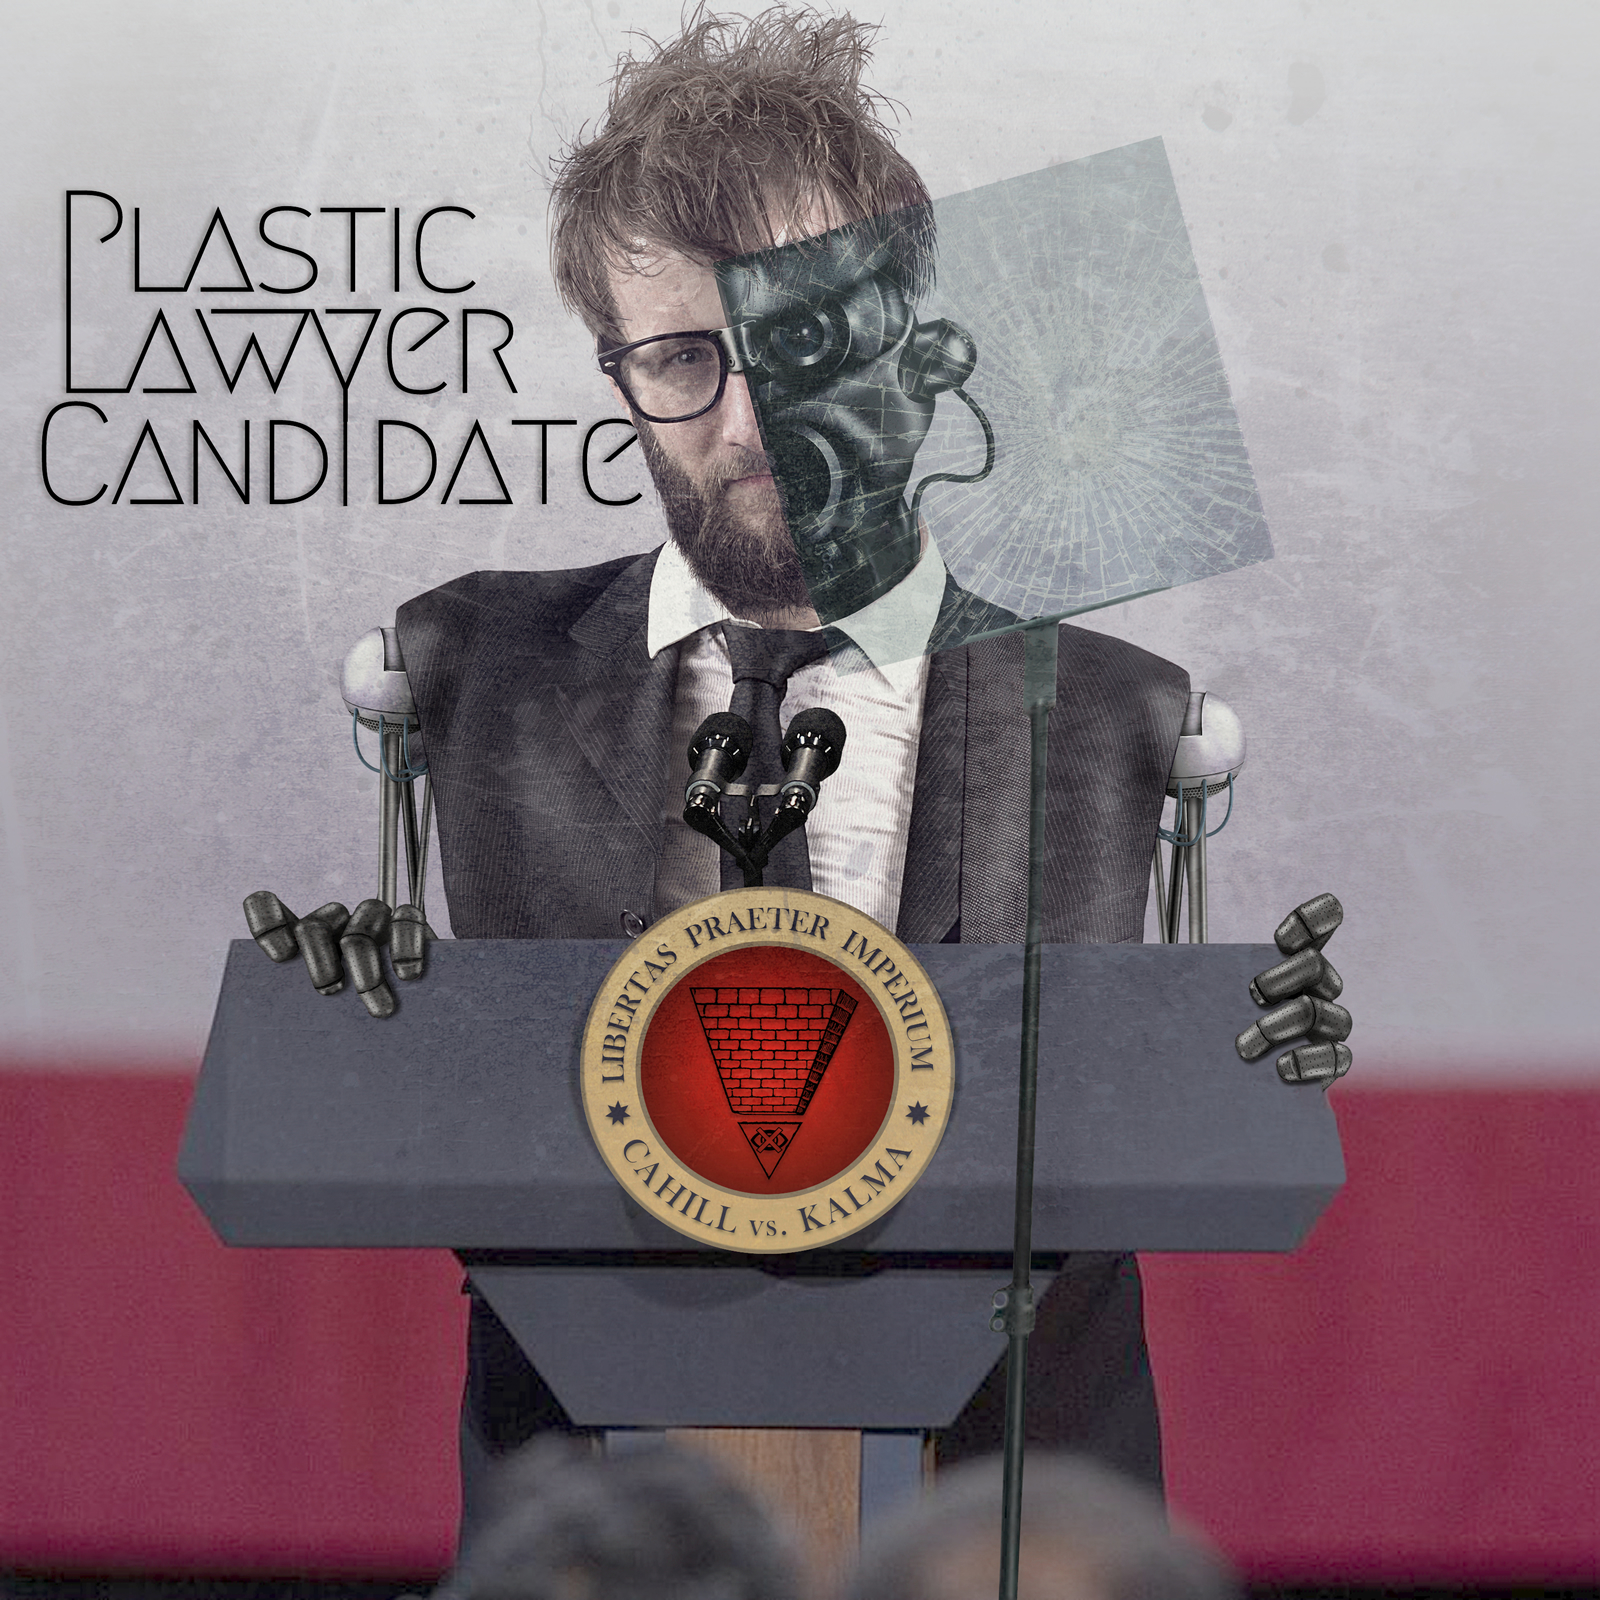 REVIEW: Plastic Lawyer Candidate destined to be historic protest song